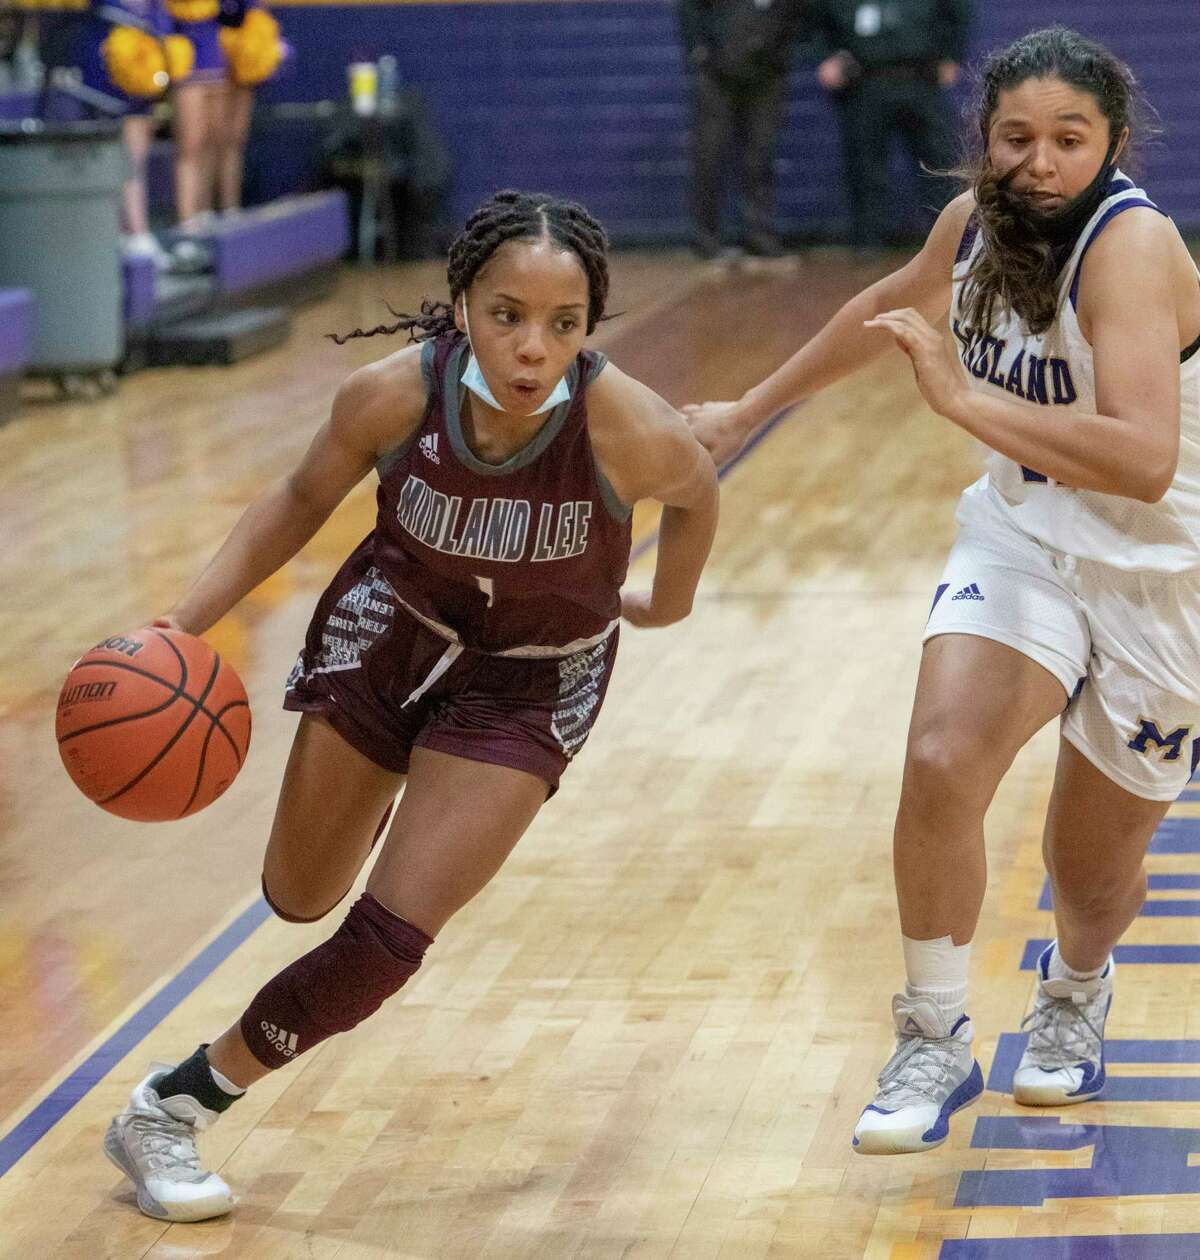 Lee High's Myleah Young drives down the sideline as she gets around Midland High's Noemi Areiga 01/05/2021 at the Midland High gym. Tim Fischer/Reporter-Telegram